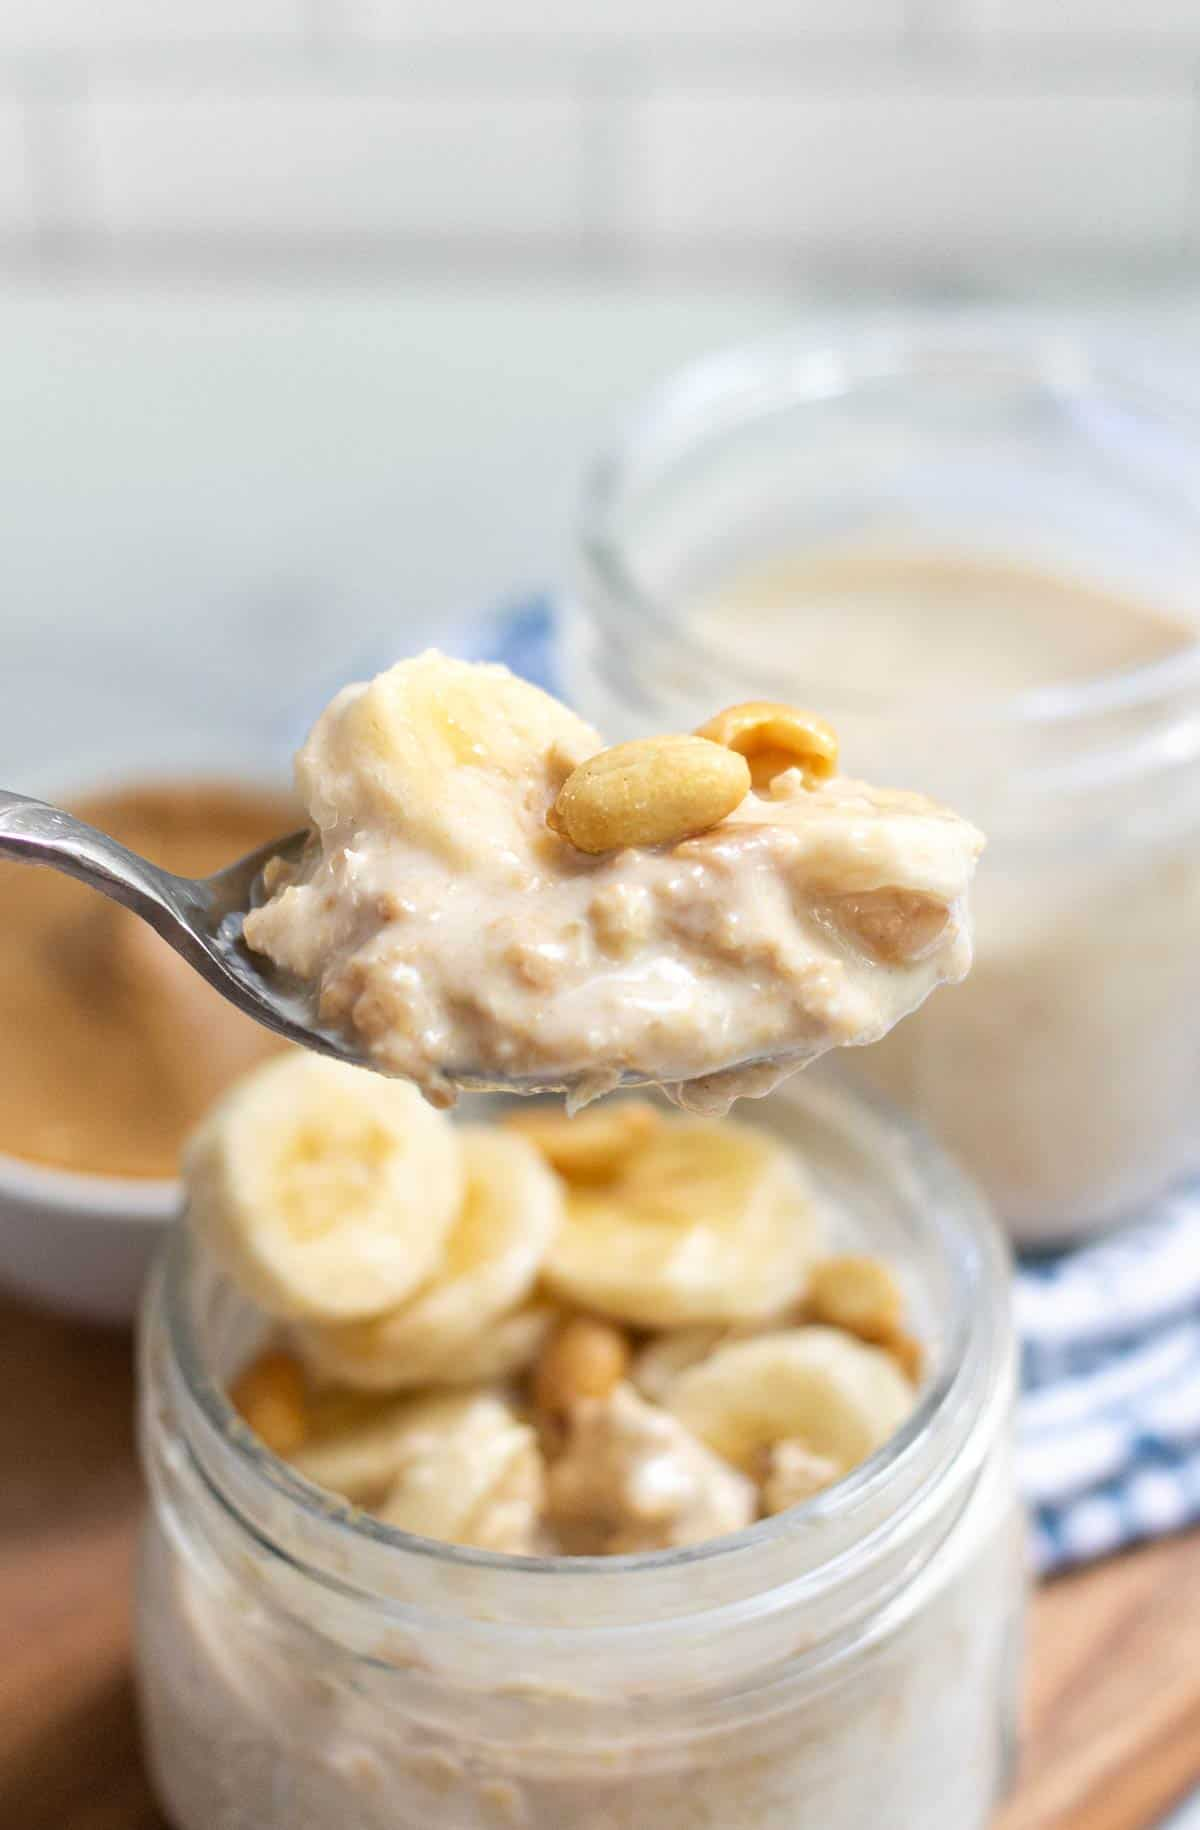 Spoonful of peanut butter overnight oats with a banana slice and peanuts on top.